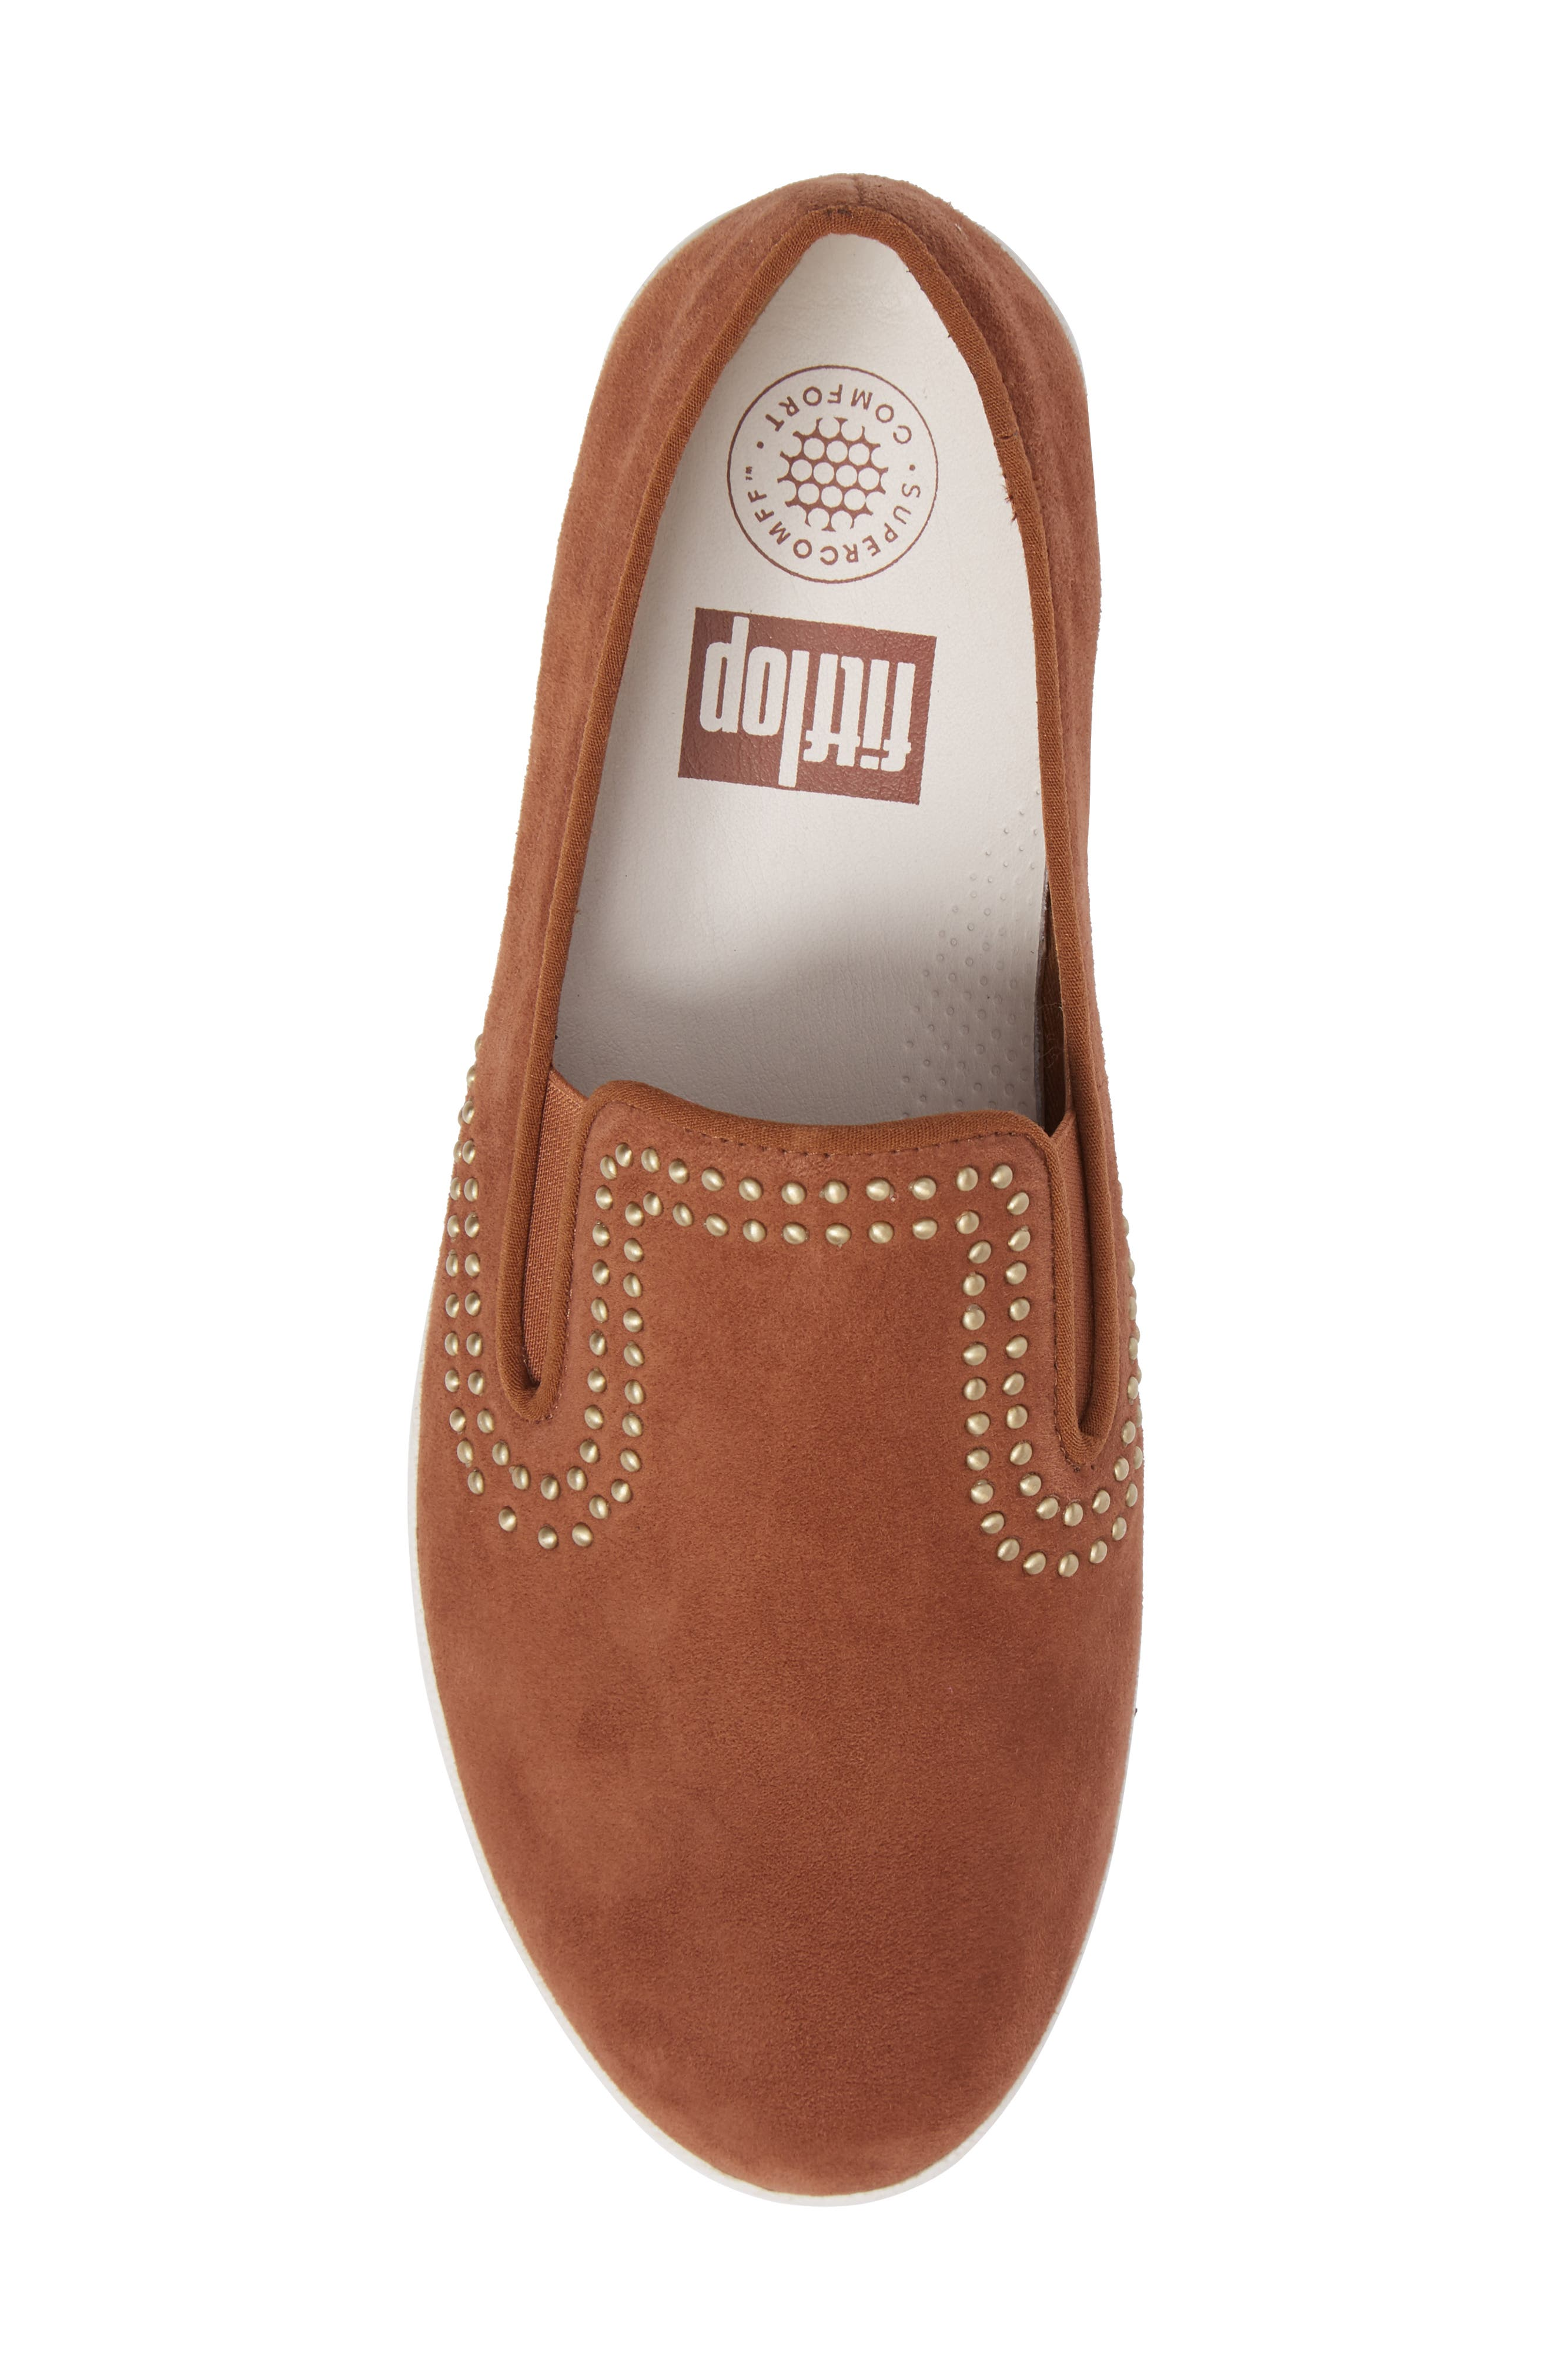 Superskate Studded Wedge Loafer,                             Alternate thumbnail 5, color,                             Tan Faux Suede